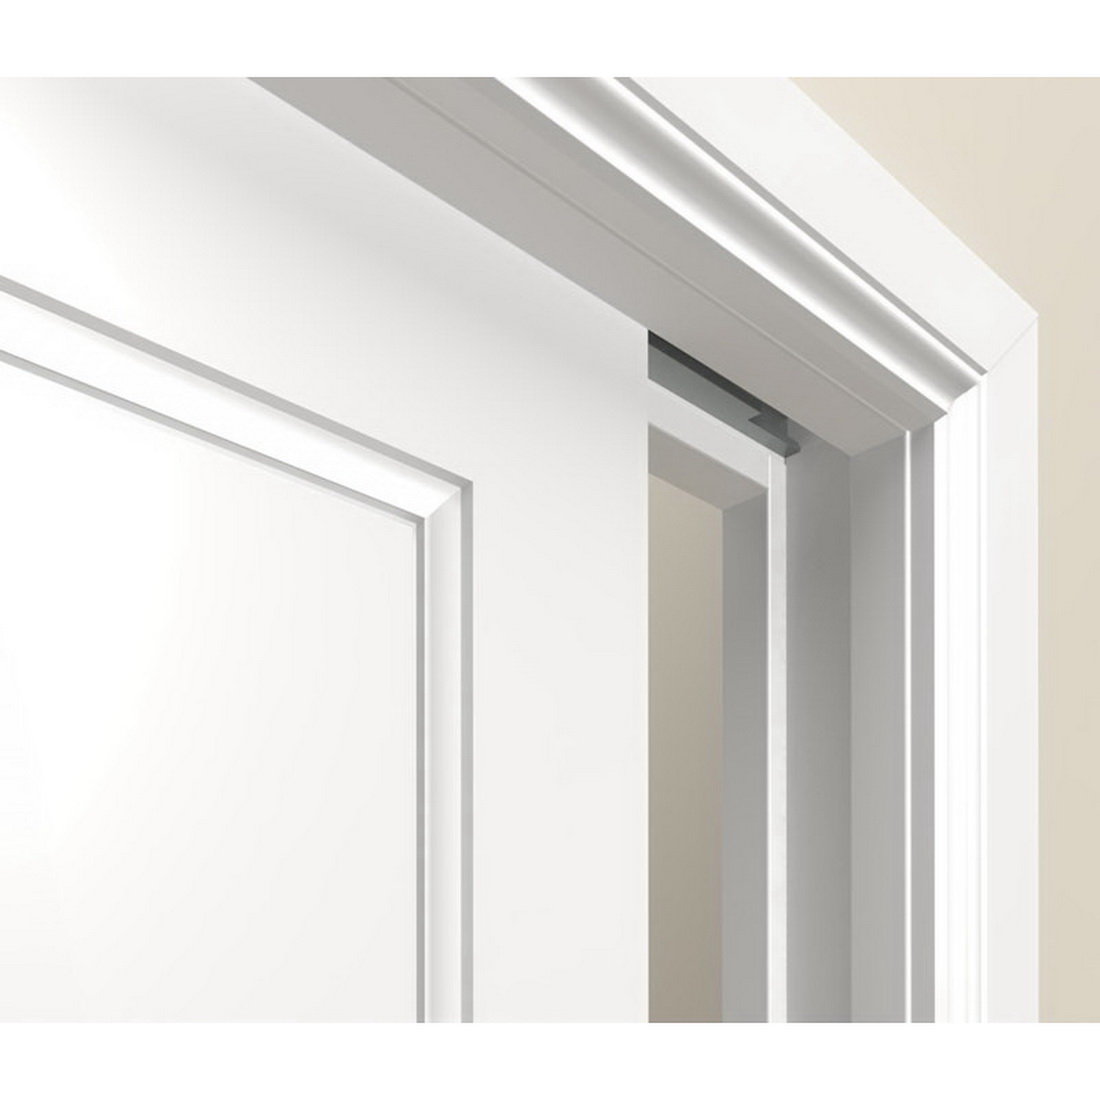 Sofstop Combo Architrave Jamb 1980 x 710 x 10mm Clear Pine